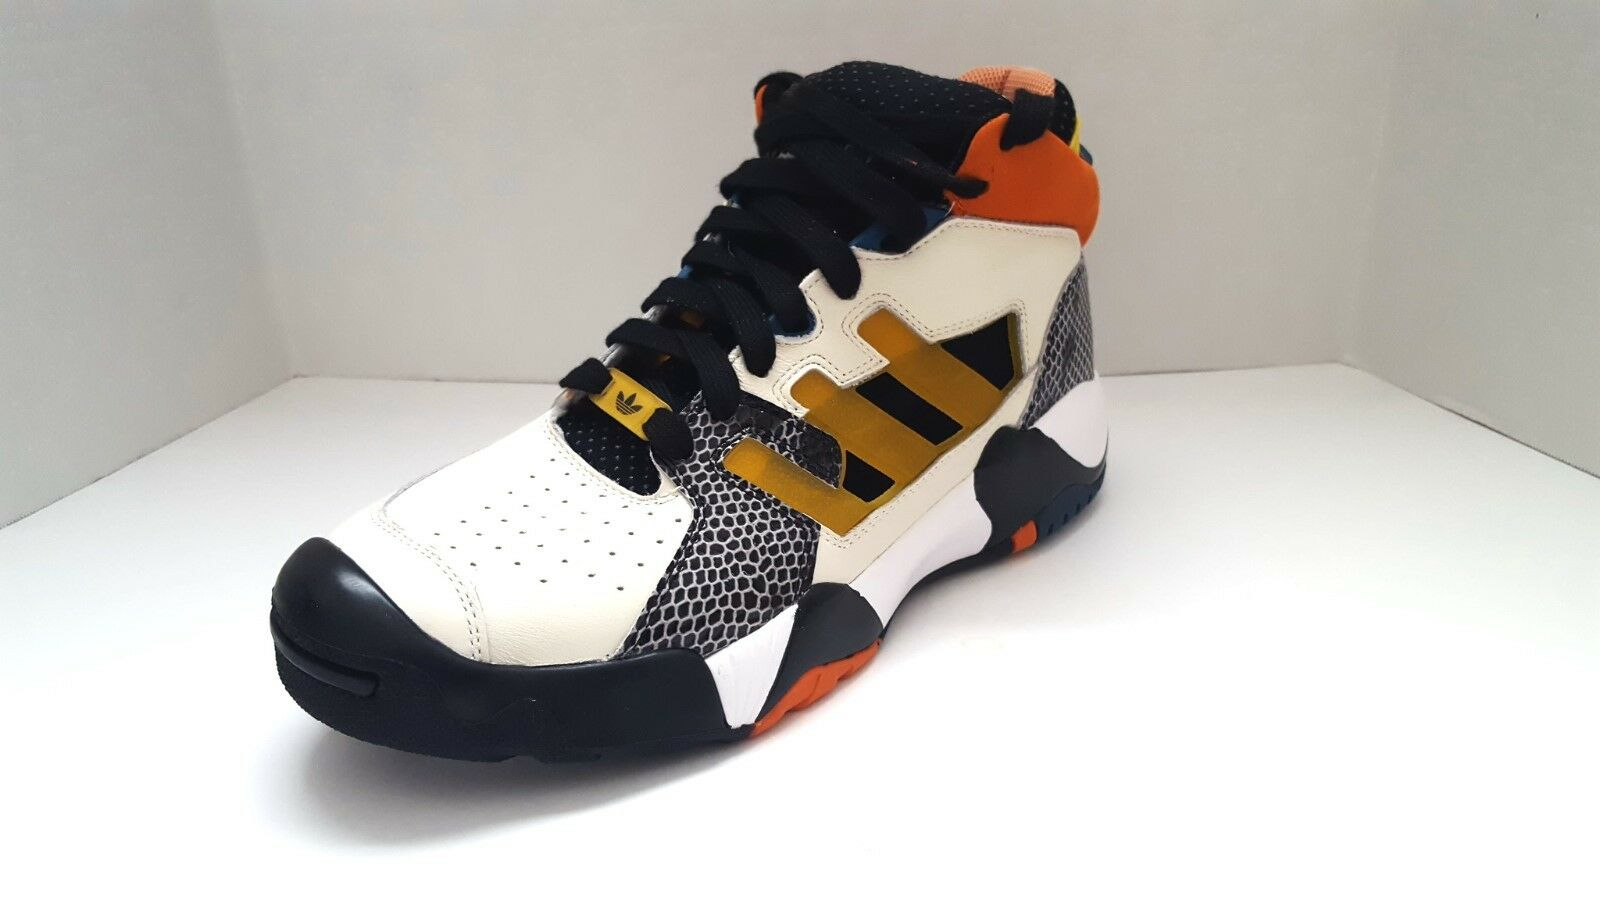 New Adidas Streetball Originals D67600 Basketball schuhe